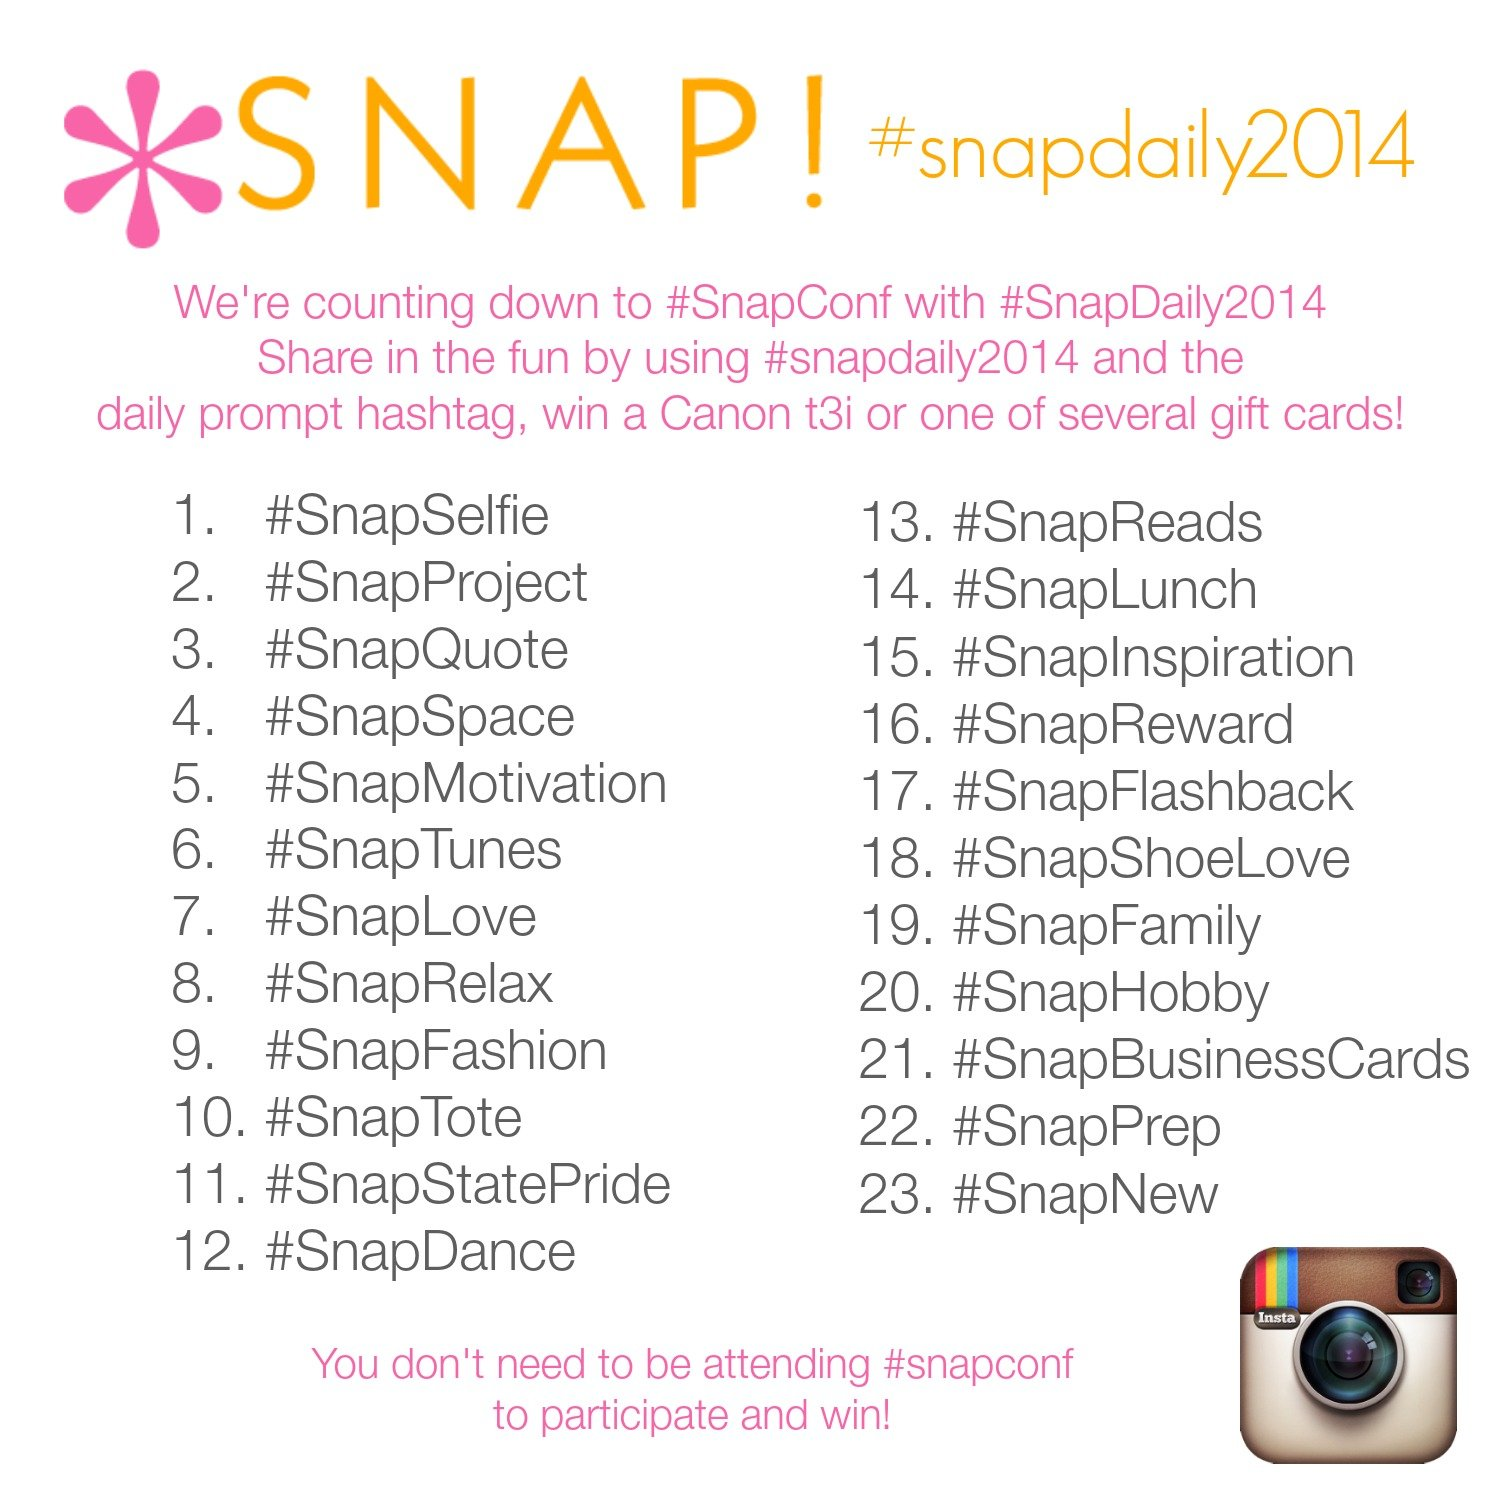 Instagram at Snap #SnapDaily2014